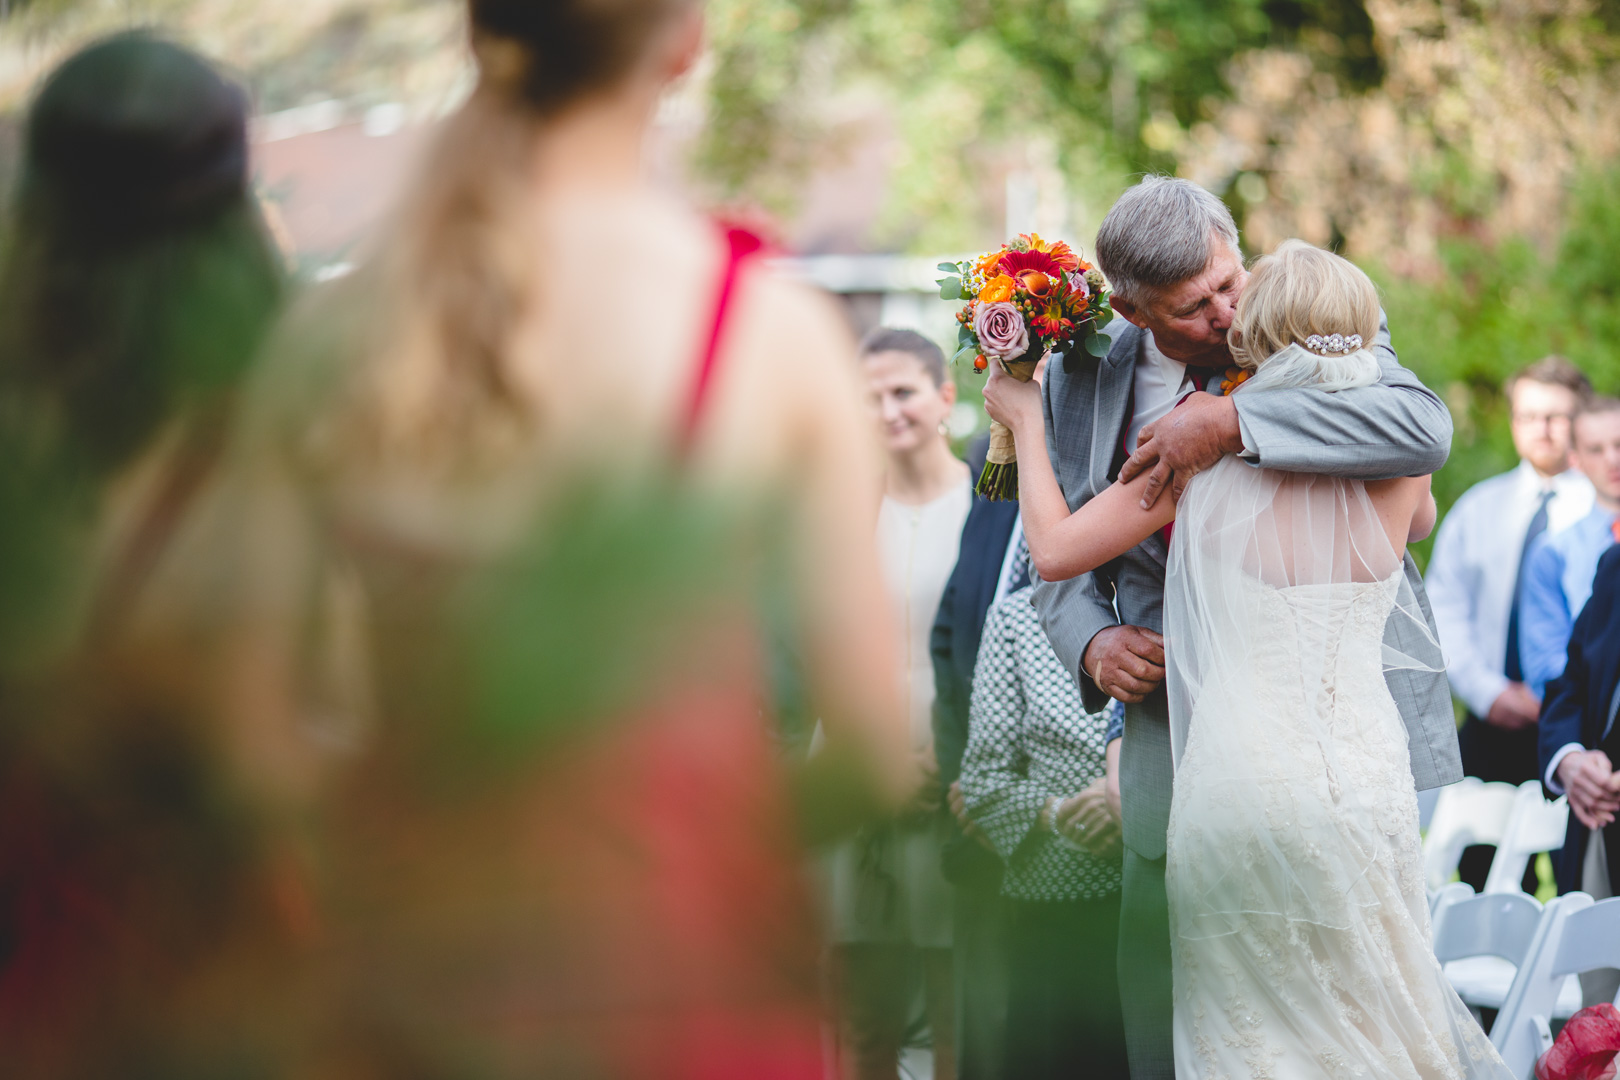 We love this moment between a bride and her father, and here, we use bokeh (the blurriness) to separate the two of them from the rest of the photo in-camera, because this moment belongs to the two of them.